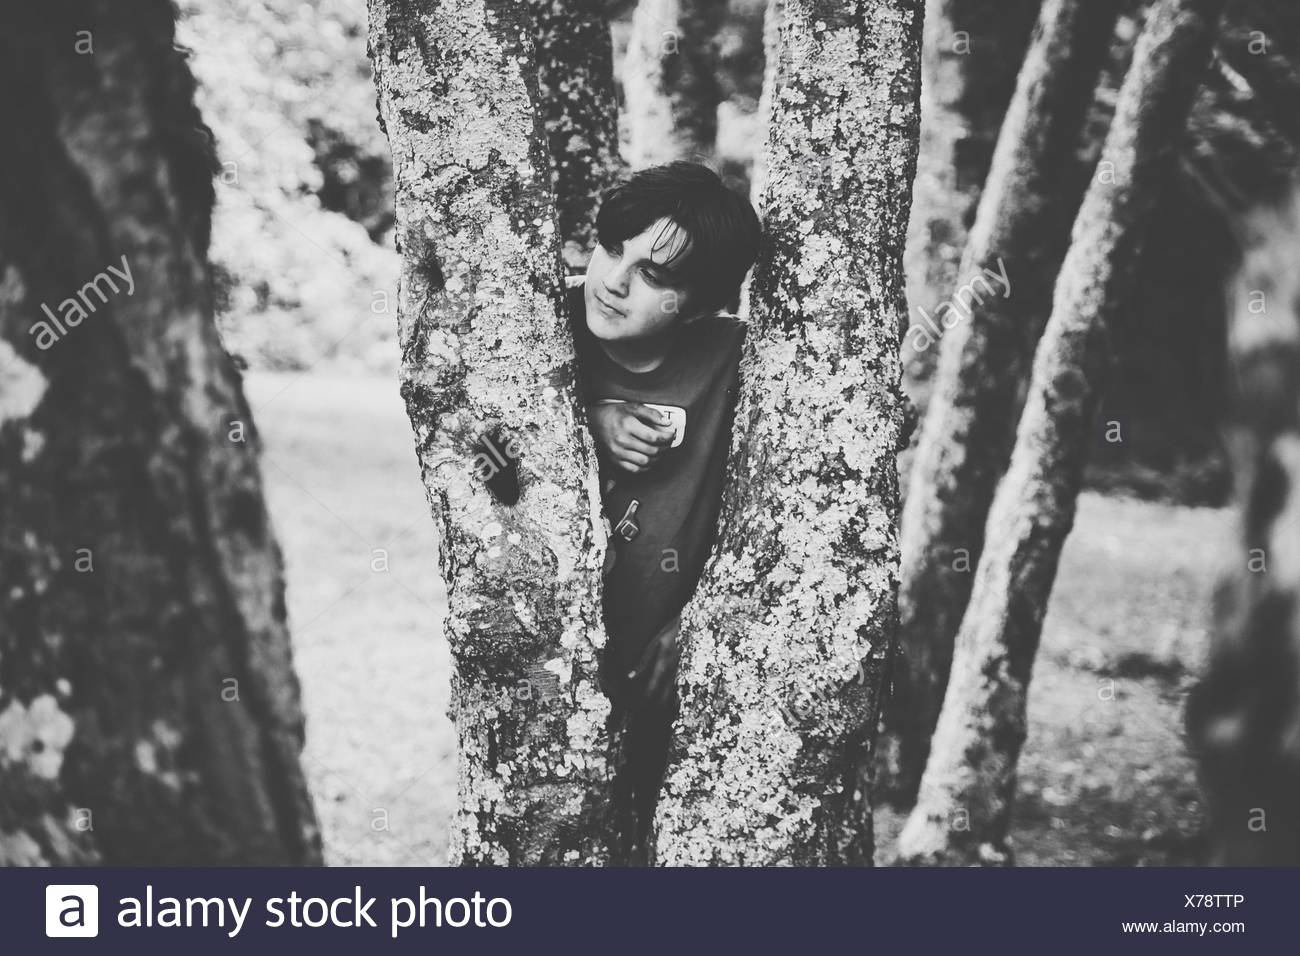 Young Man Standing Behind Tree Trunks In Park - Stock Image